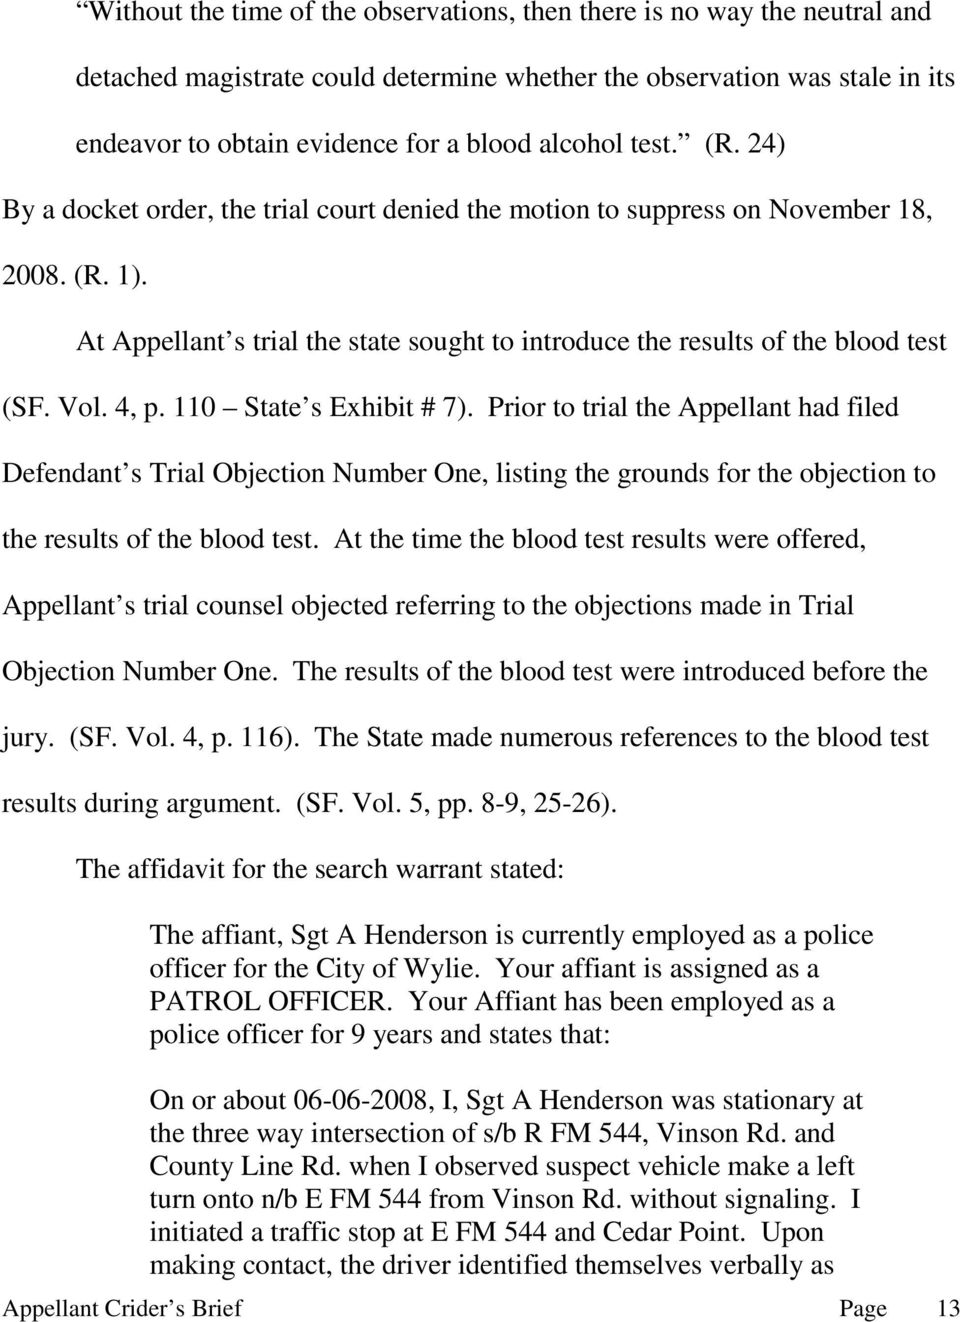 4, p. 110 State s Exhibit # 7). Prior to trial the Appellant had filed Defendant s Trial Objection Number One, listing the grounds for the objection to the results of the blood test.